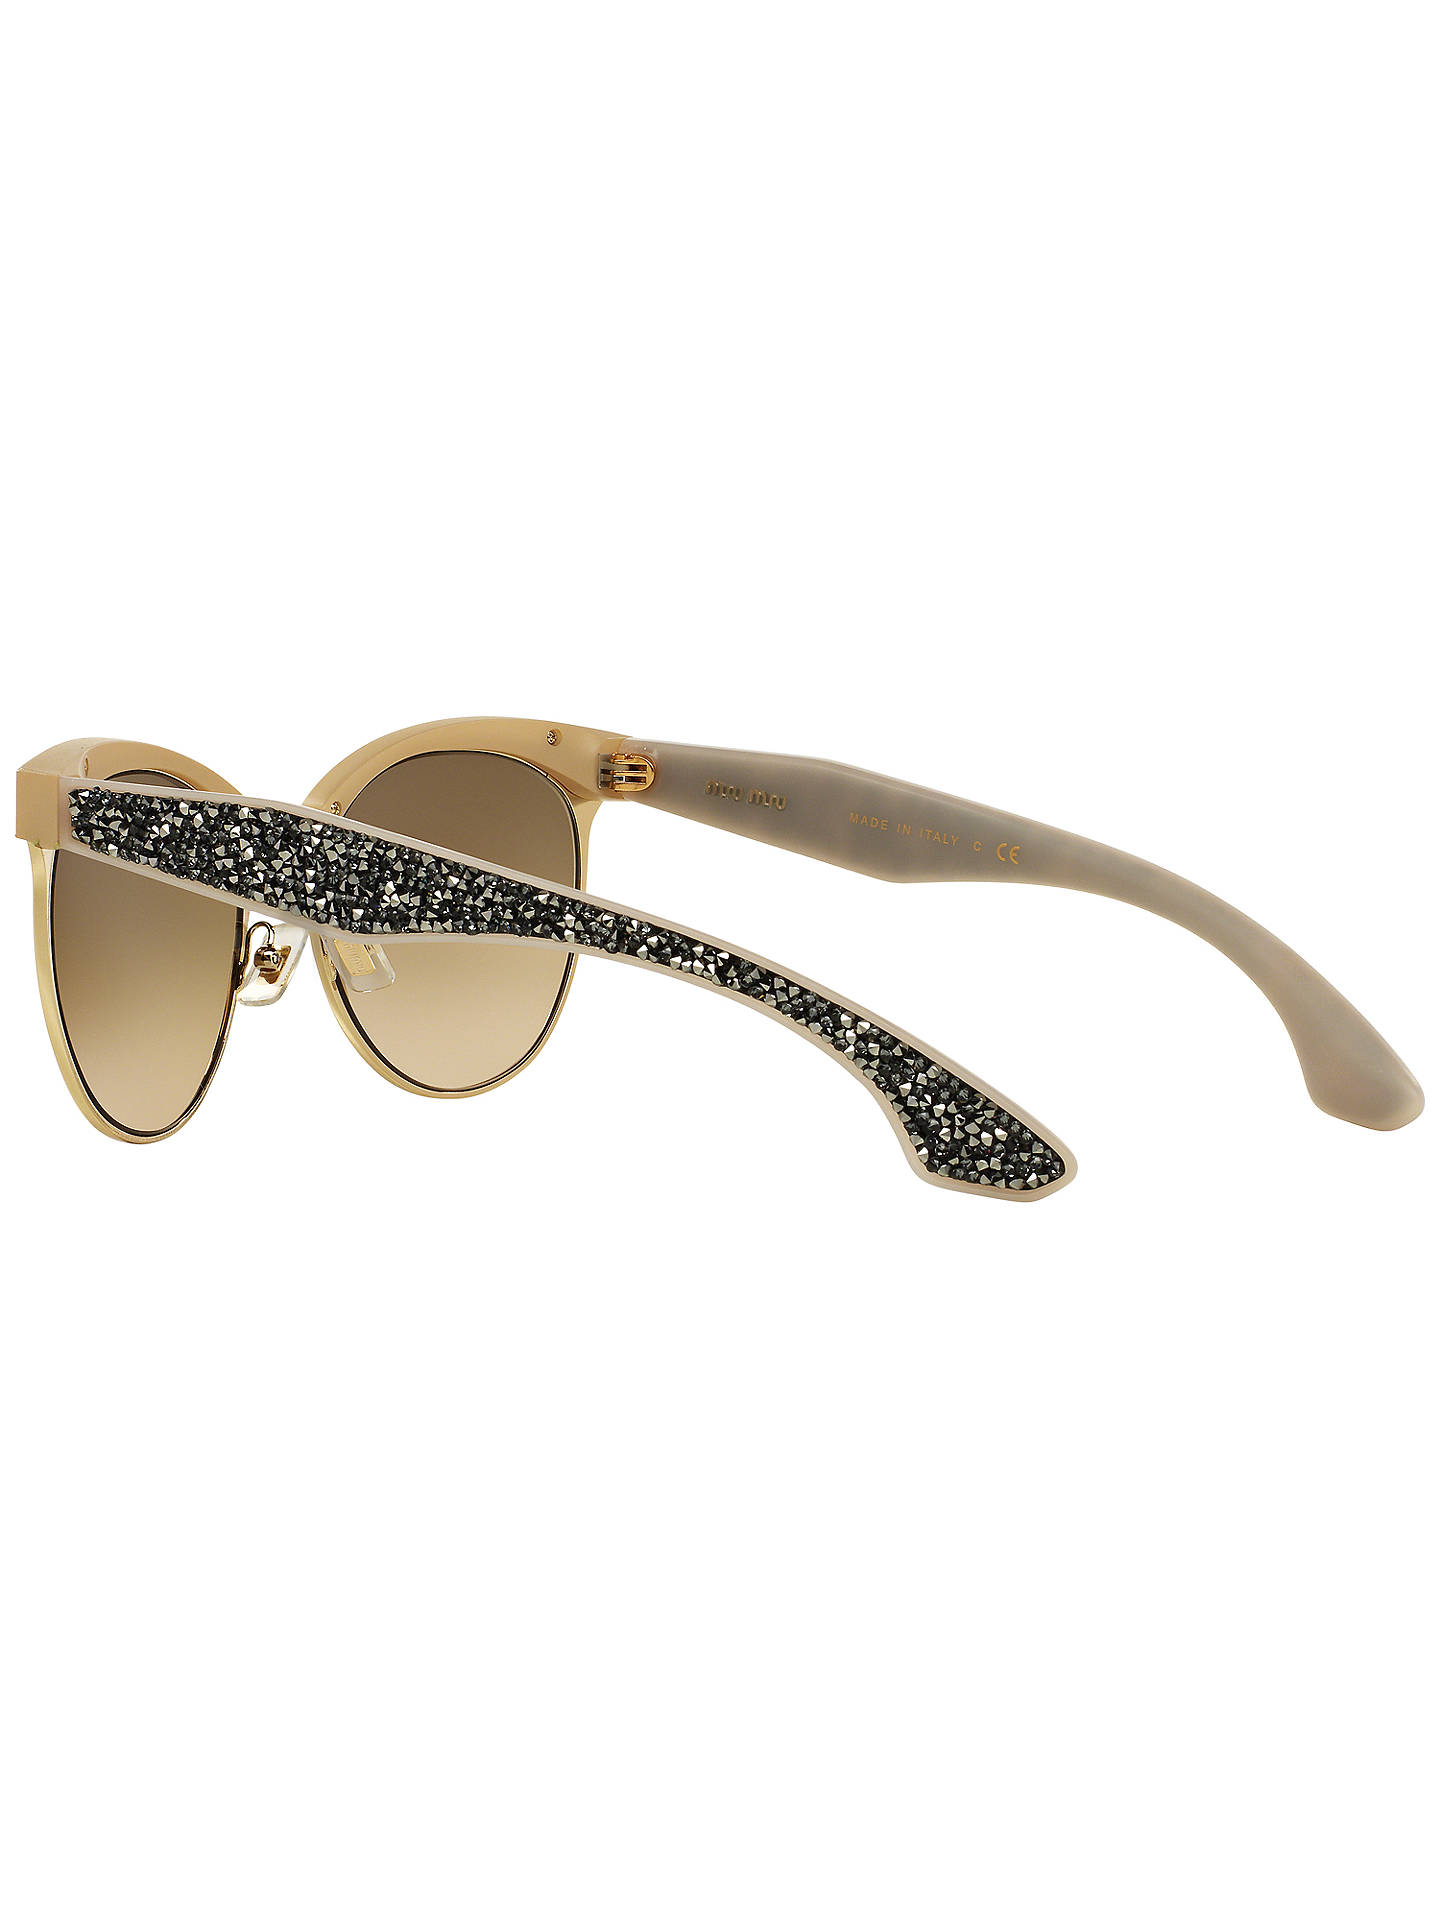 Buy Miu Miu MU54QS Stardust Bead Encrusted Sunglasses, Brown Online at johnlewis.com